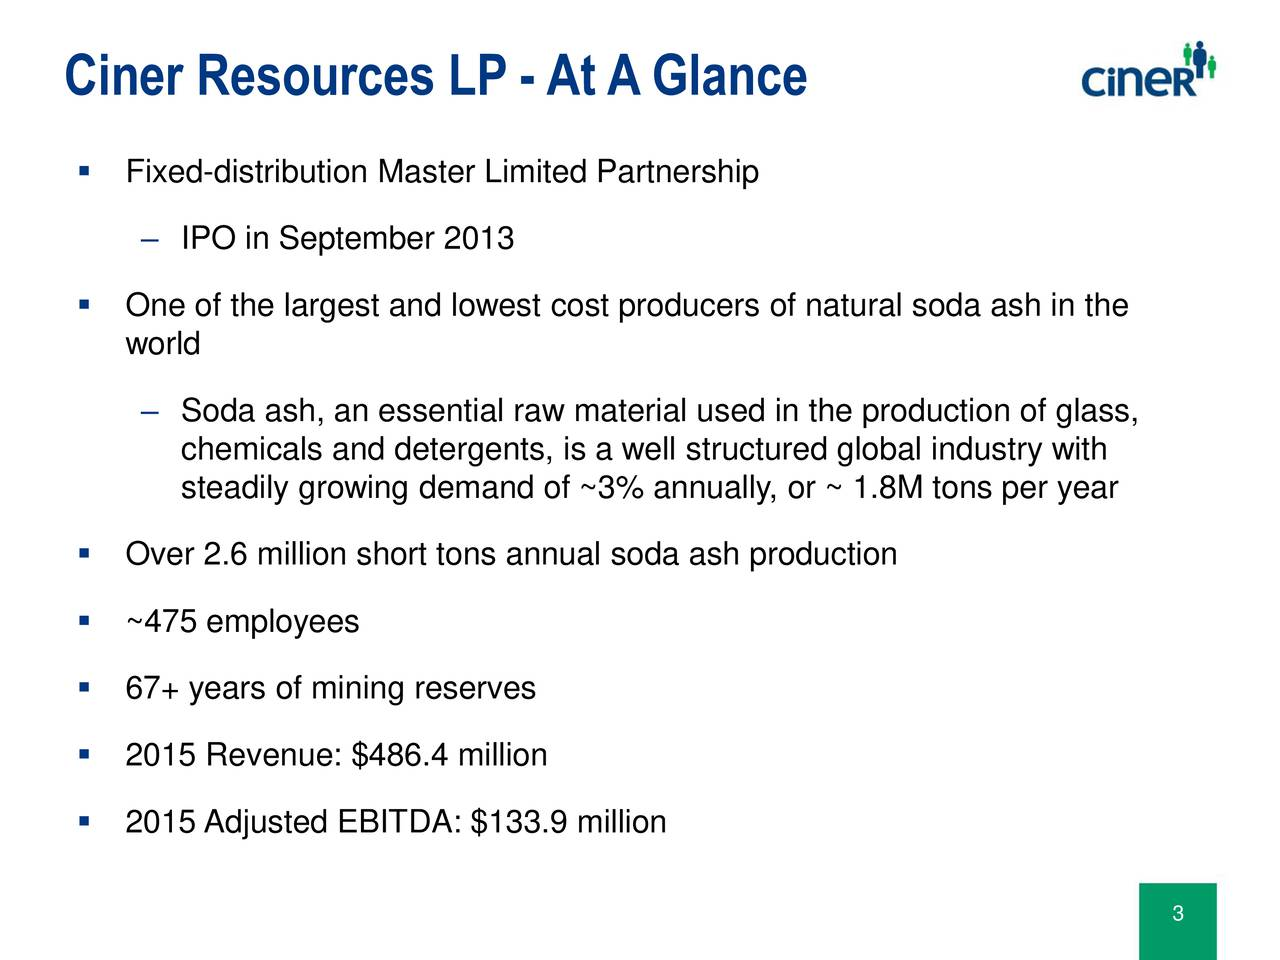 Fixed-distribution Master Limited Partnership IPO in September 2013 One of the largest and lowest cost producers of natural soda ash in the world Soda ash, an essential raw material used in the production of glass, chemicals and detergents, is a well structured global industry with steadily growing demand of ~3% annually, or ~ 1.8M tons per year Over 2.6 million short tons annual soda ash production ~475 employees 67+ years of mining reserves 2015 Revenue: $486.4 million 2015 Adjusted EBITDA: $133.9 million 3